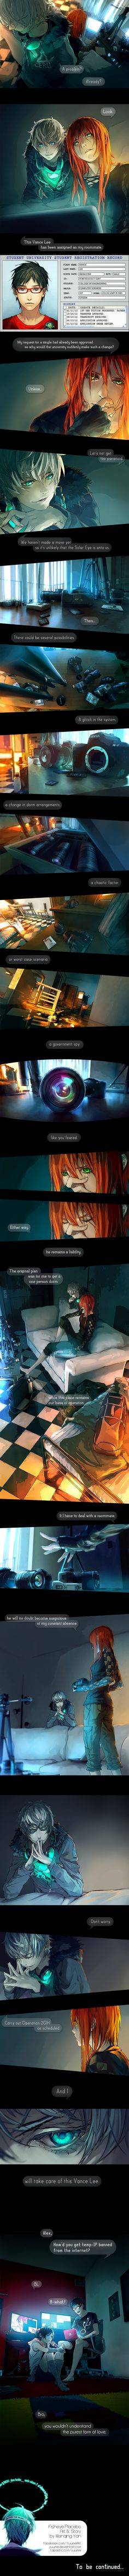 Fisheye Placebo: Ch0 - Part 2 by yuumei.deviantart.com on @deviantART